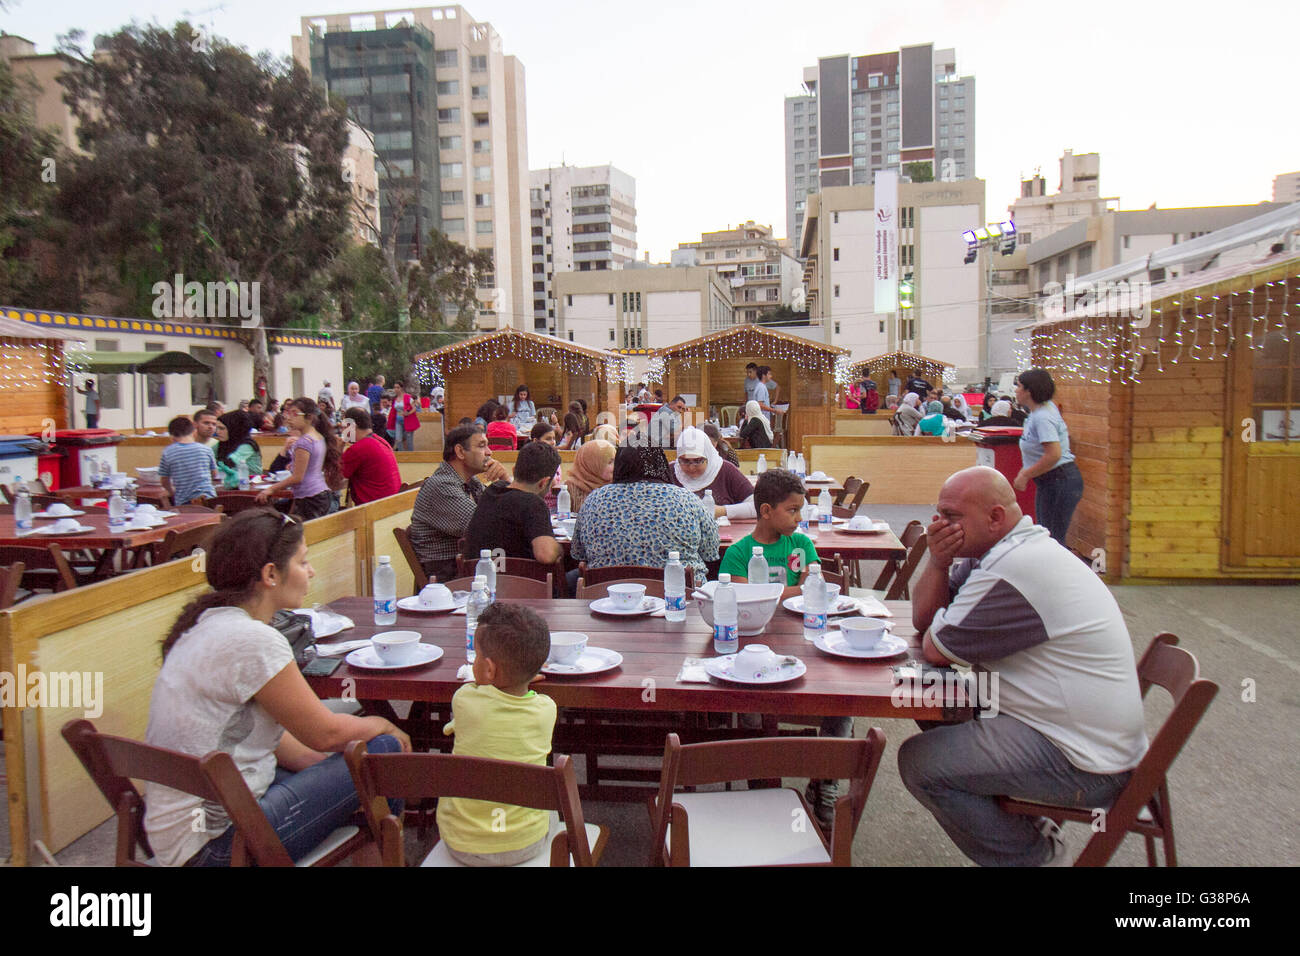 Beirut, Lebanon. 9th June, 2016. Devout Muslim families prepare to end their daily Ramadan fast at sunset for the - Stock Image